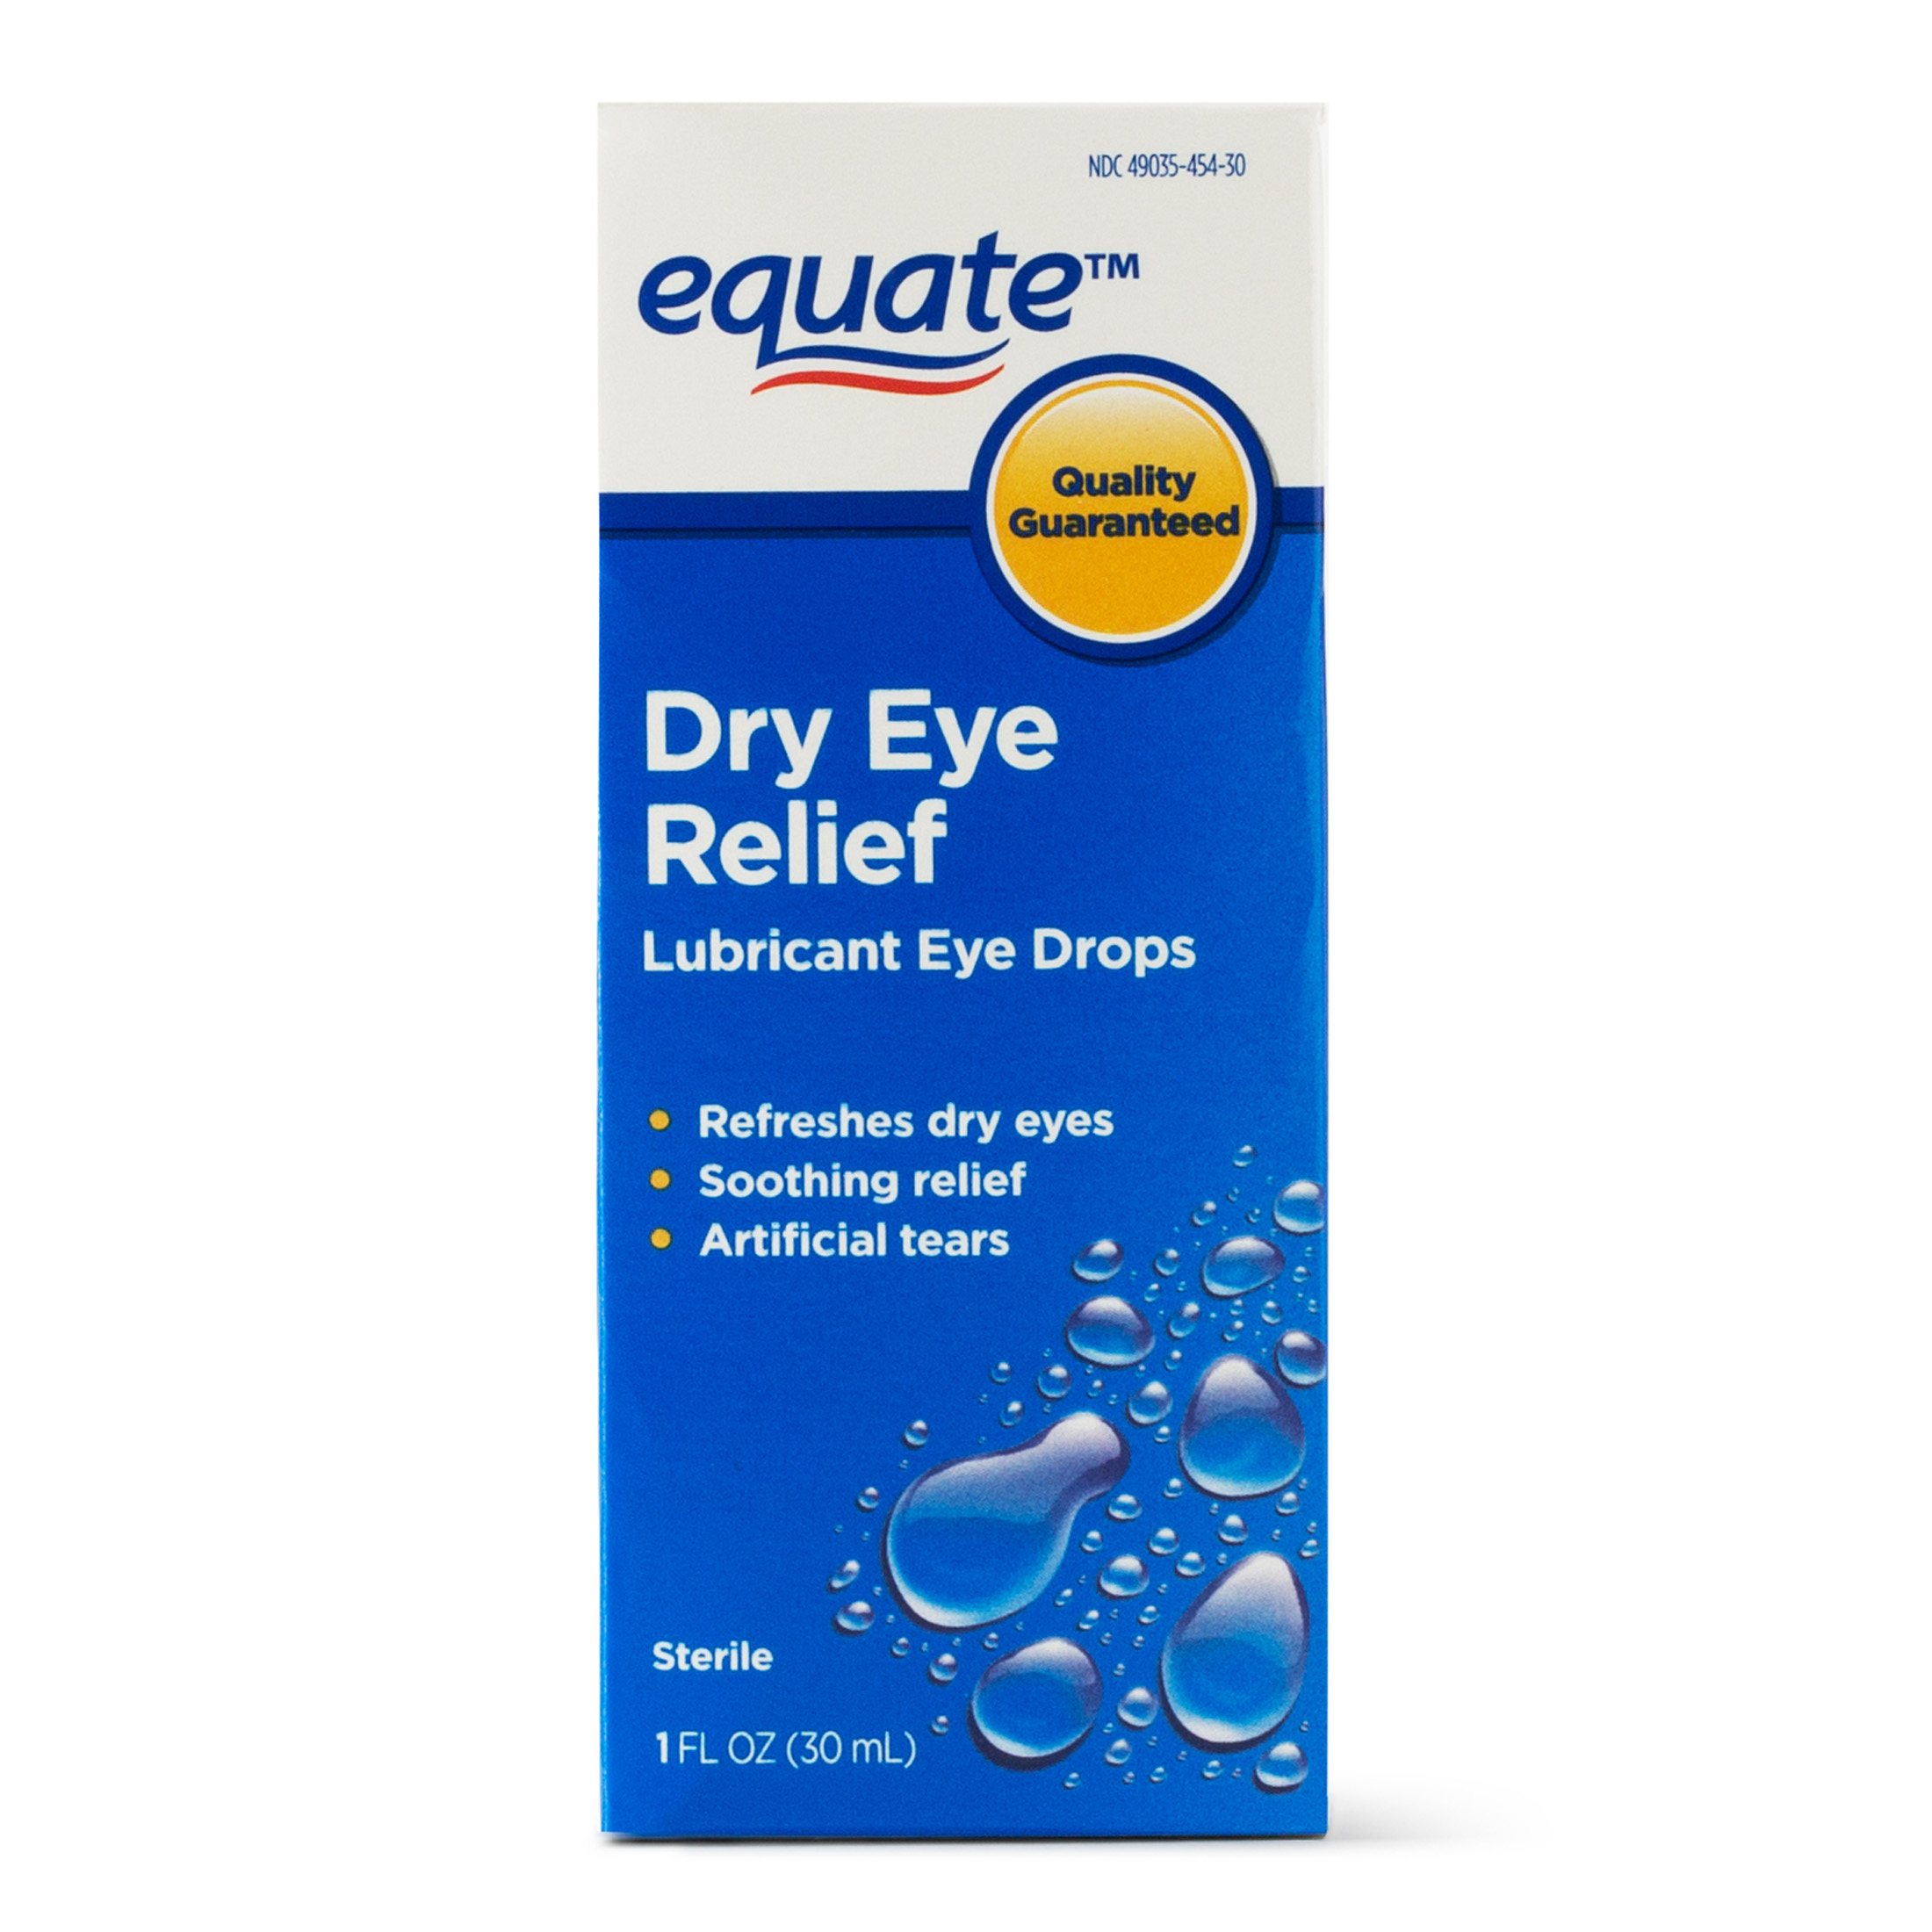 Equate Dry Eye Relief Lubricant Eye Drops Liquid, 1 Oz